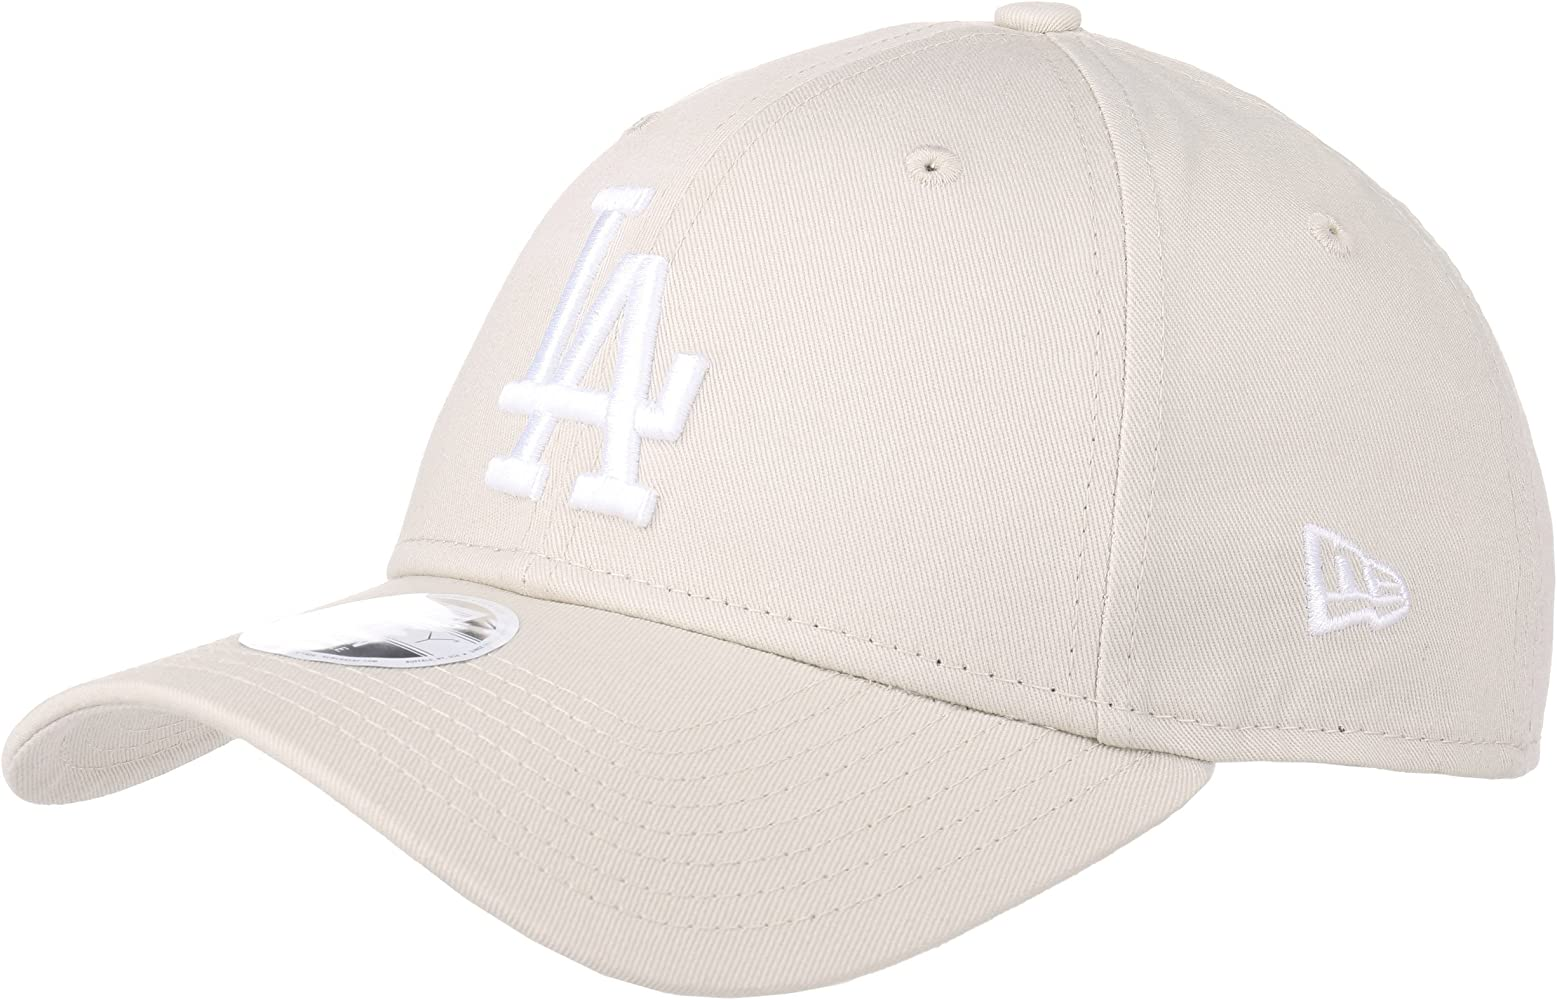 New Era Gorra 9Forty ESS Dodgers Strapback by Gorragorra de ...